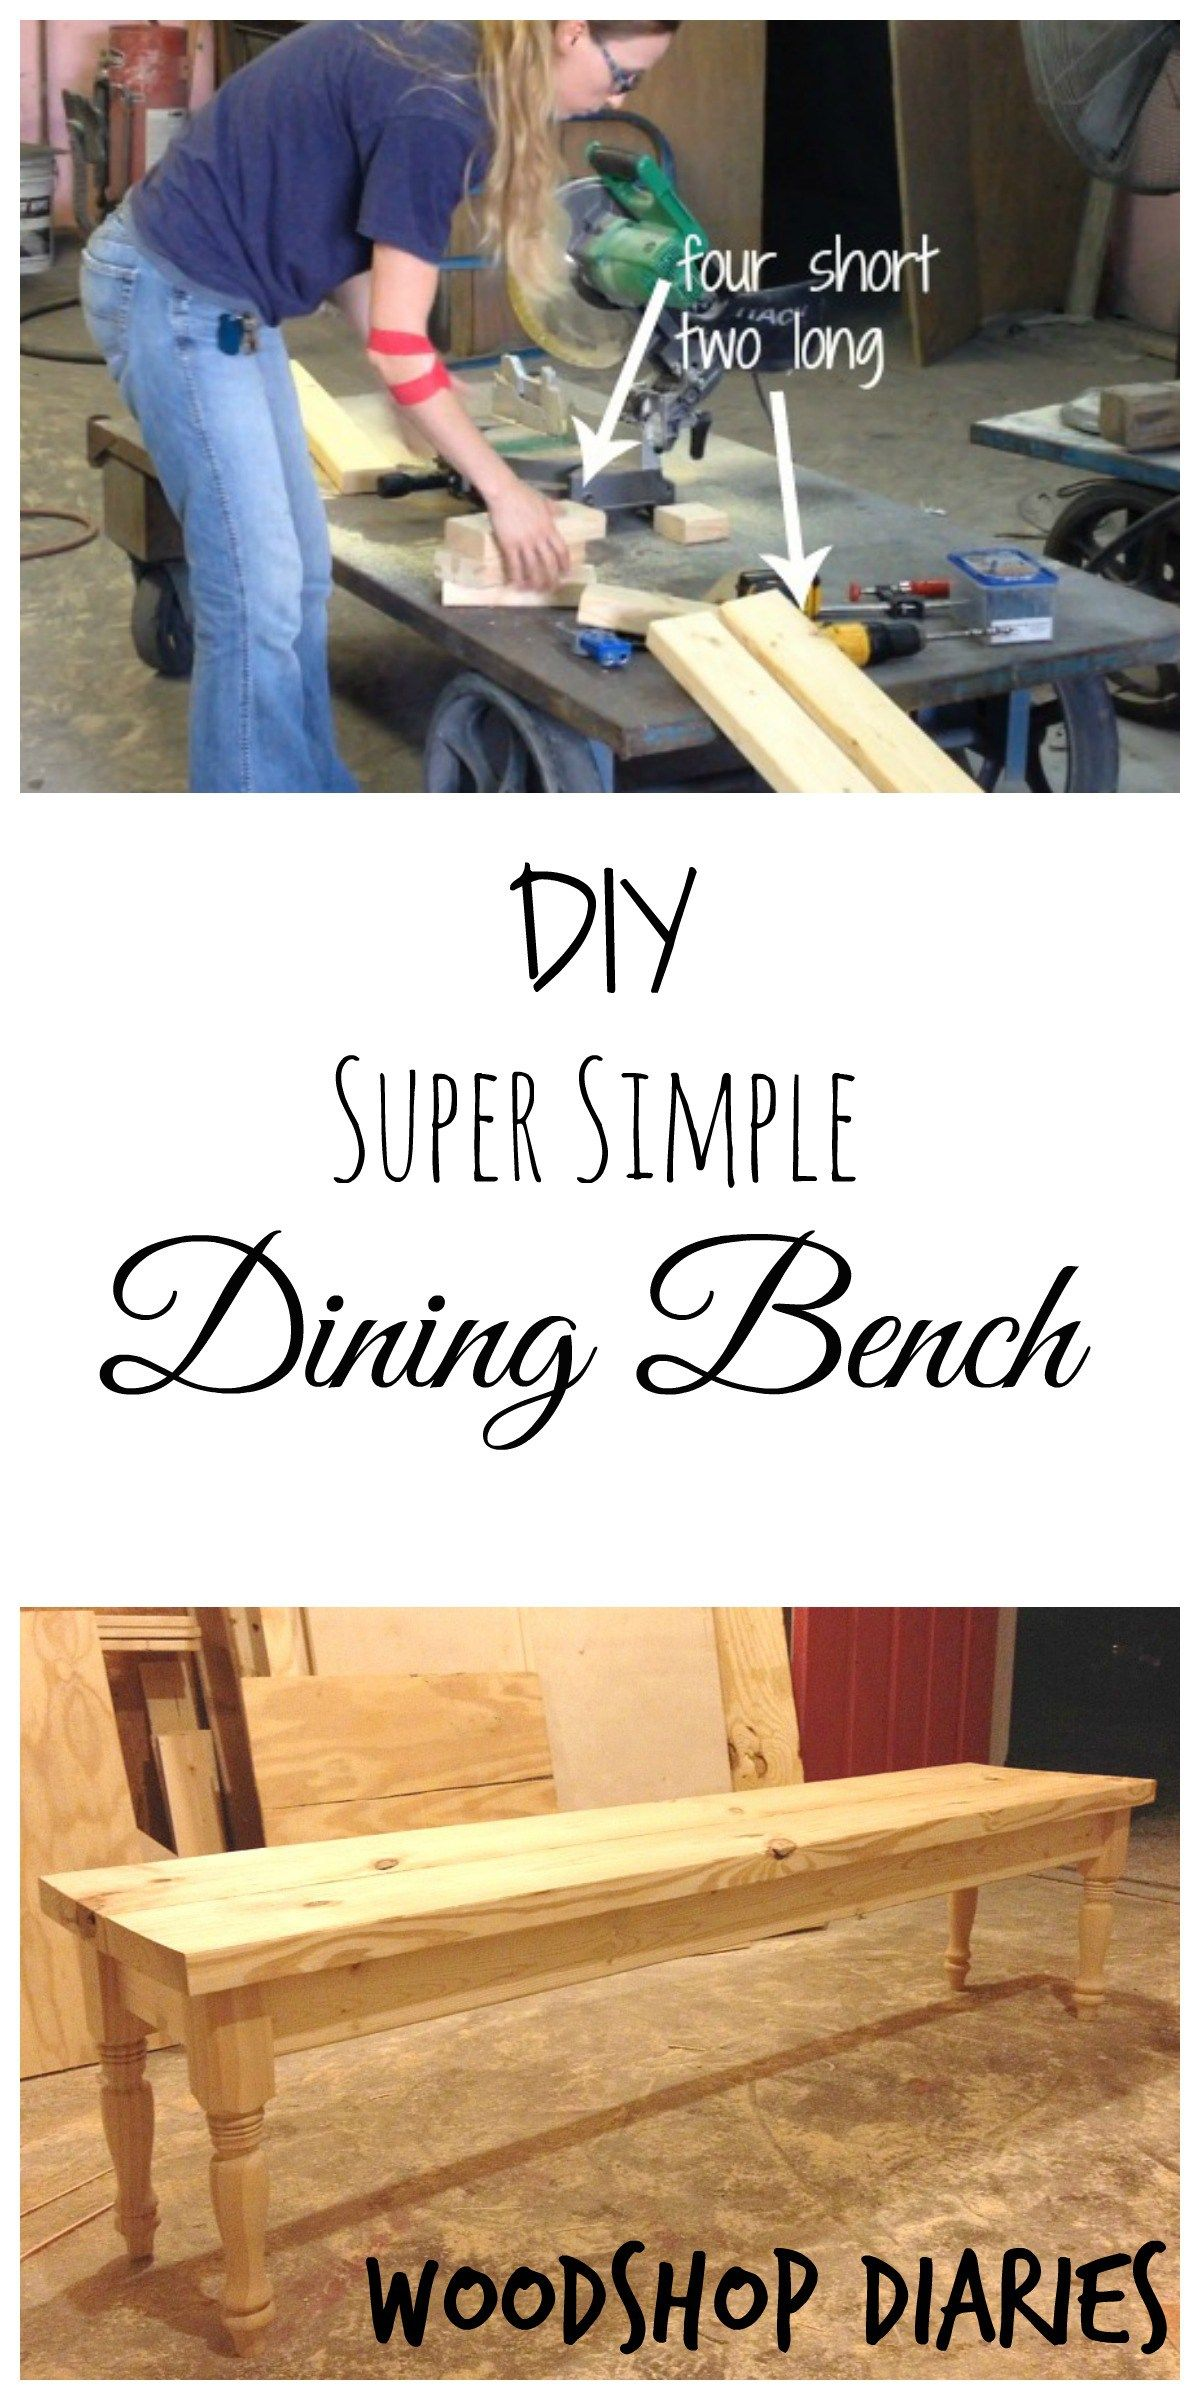 how to build a super simple diy dining bench with just a few boards and a